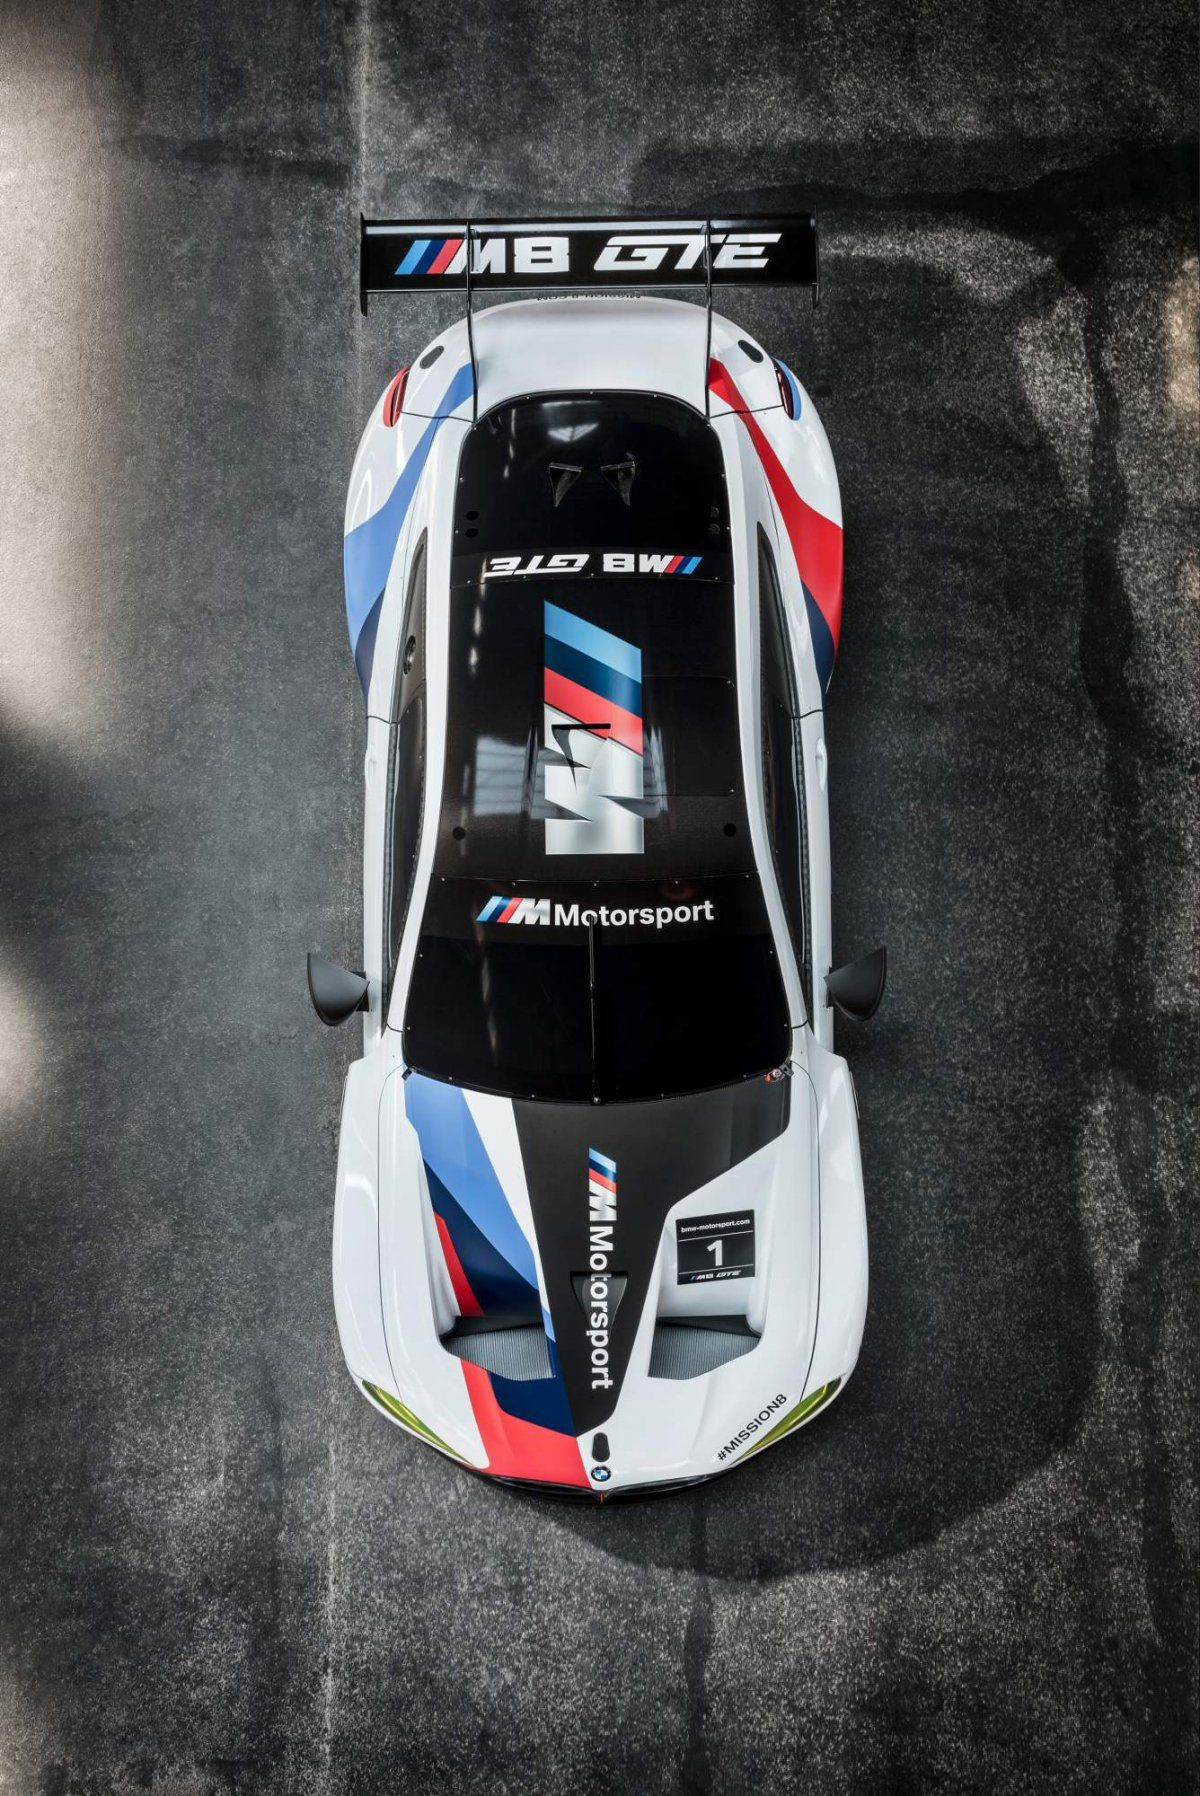 Bmw M8 Gte Endurance Racer Just Can T Wait To Prove Itself At The